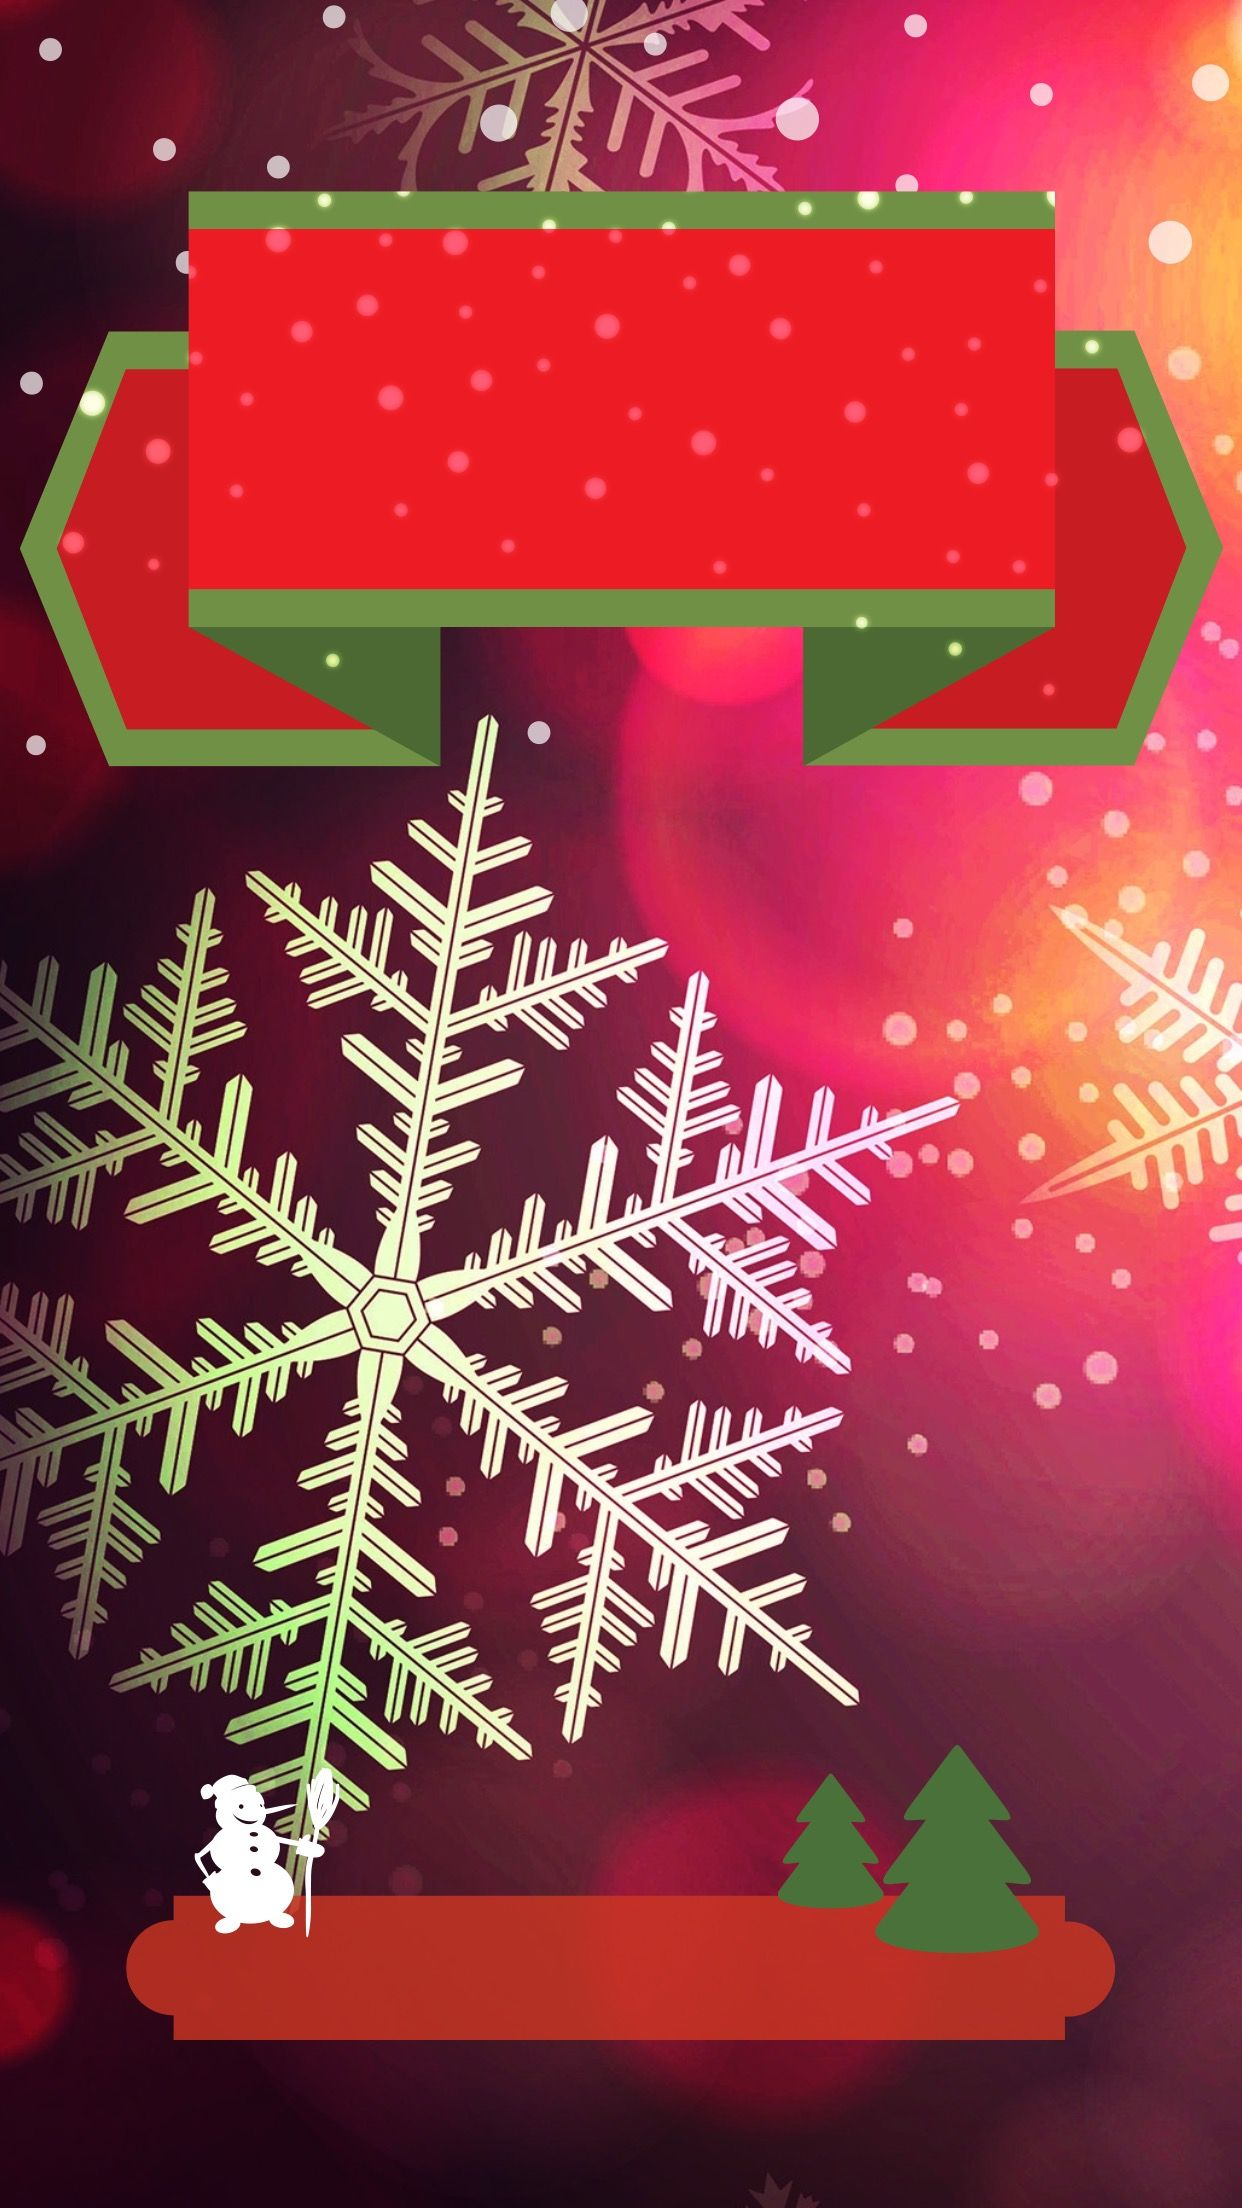 ↑↑tap and get the free app! lockscreens art creative snowflake